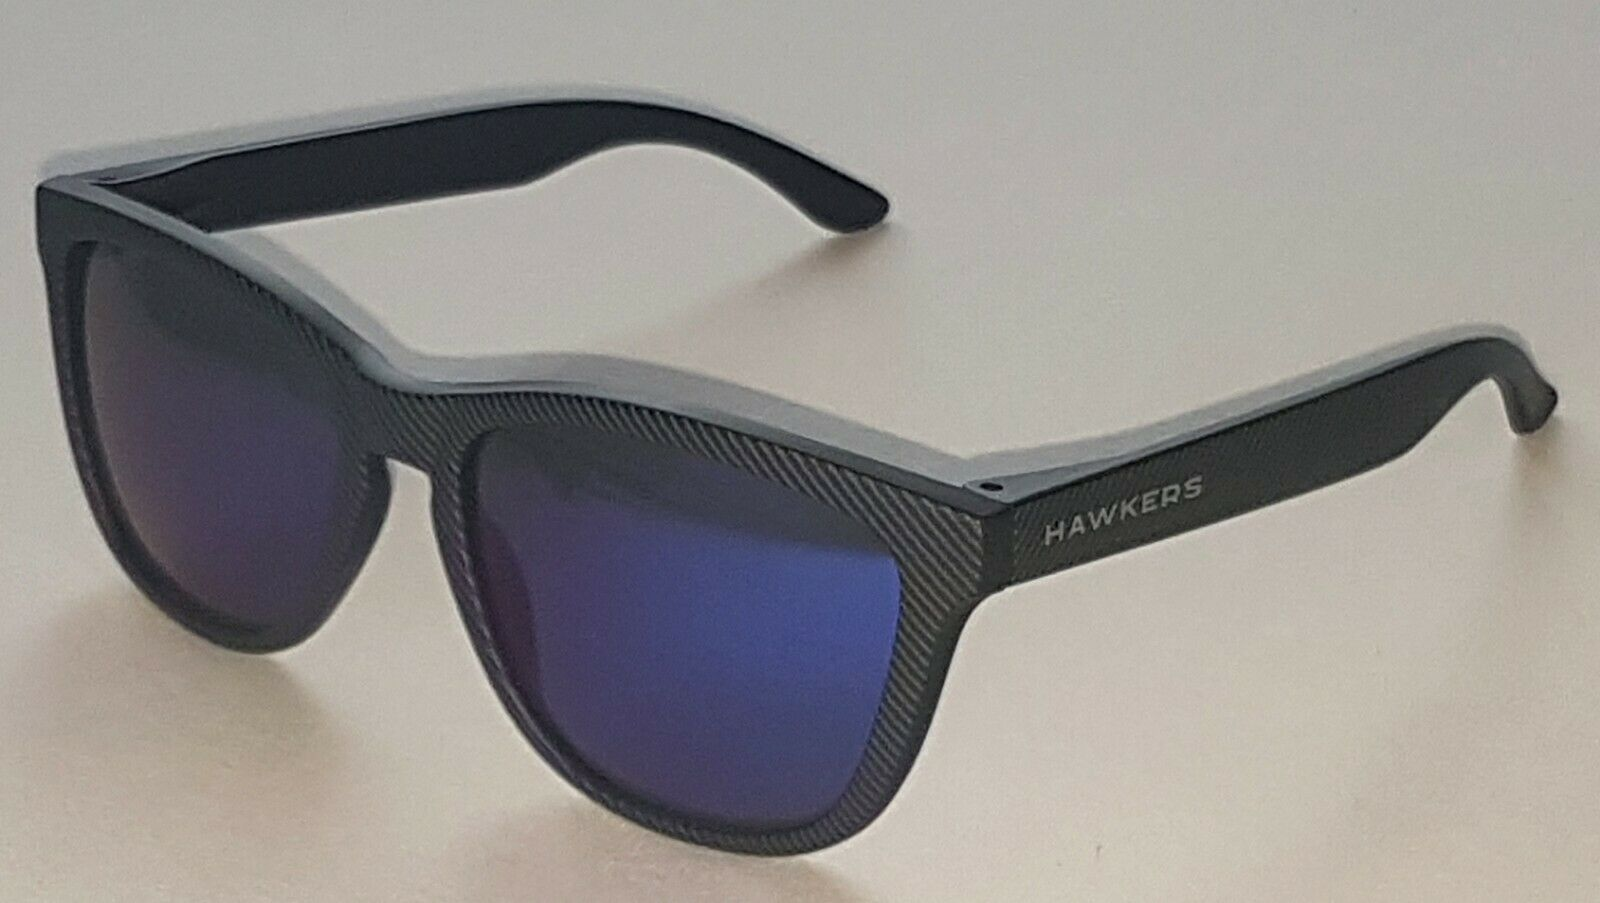 ★★ HAWKERS Sonnenbrille CARBON black blue RACING Brille HERREN Sky One CC18TR01